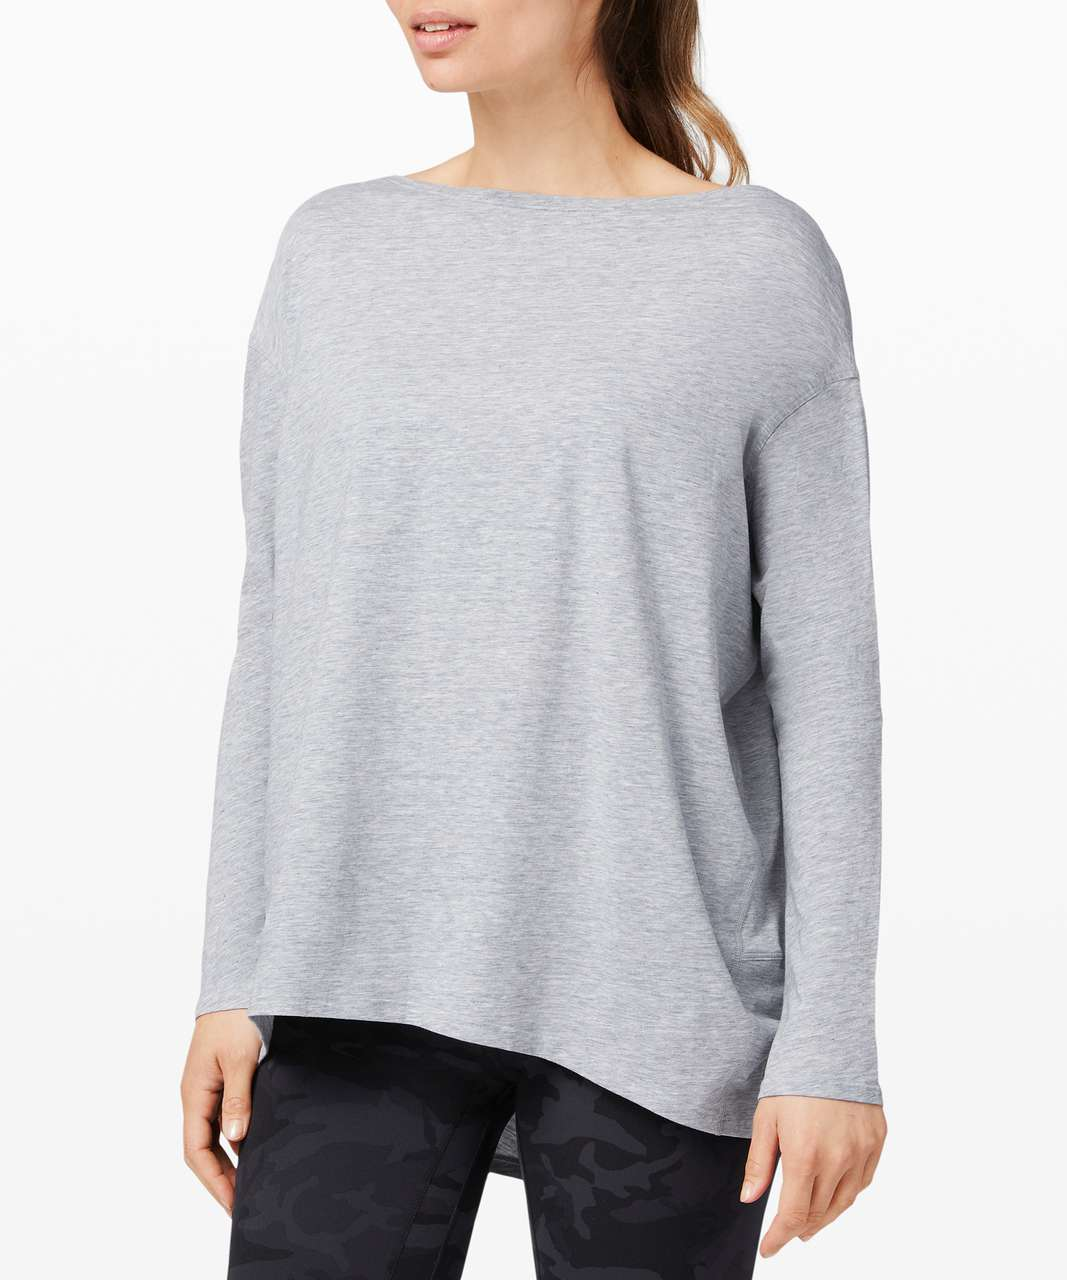 Lululemon Back In Action Long Sleeve - Heathered Magnet Grey